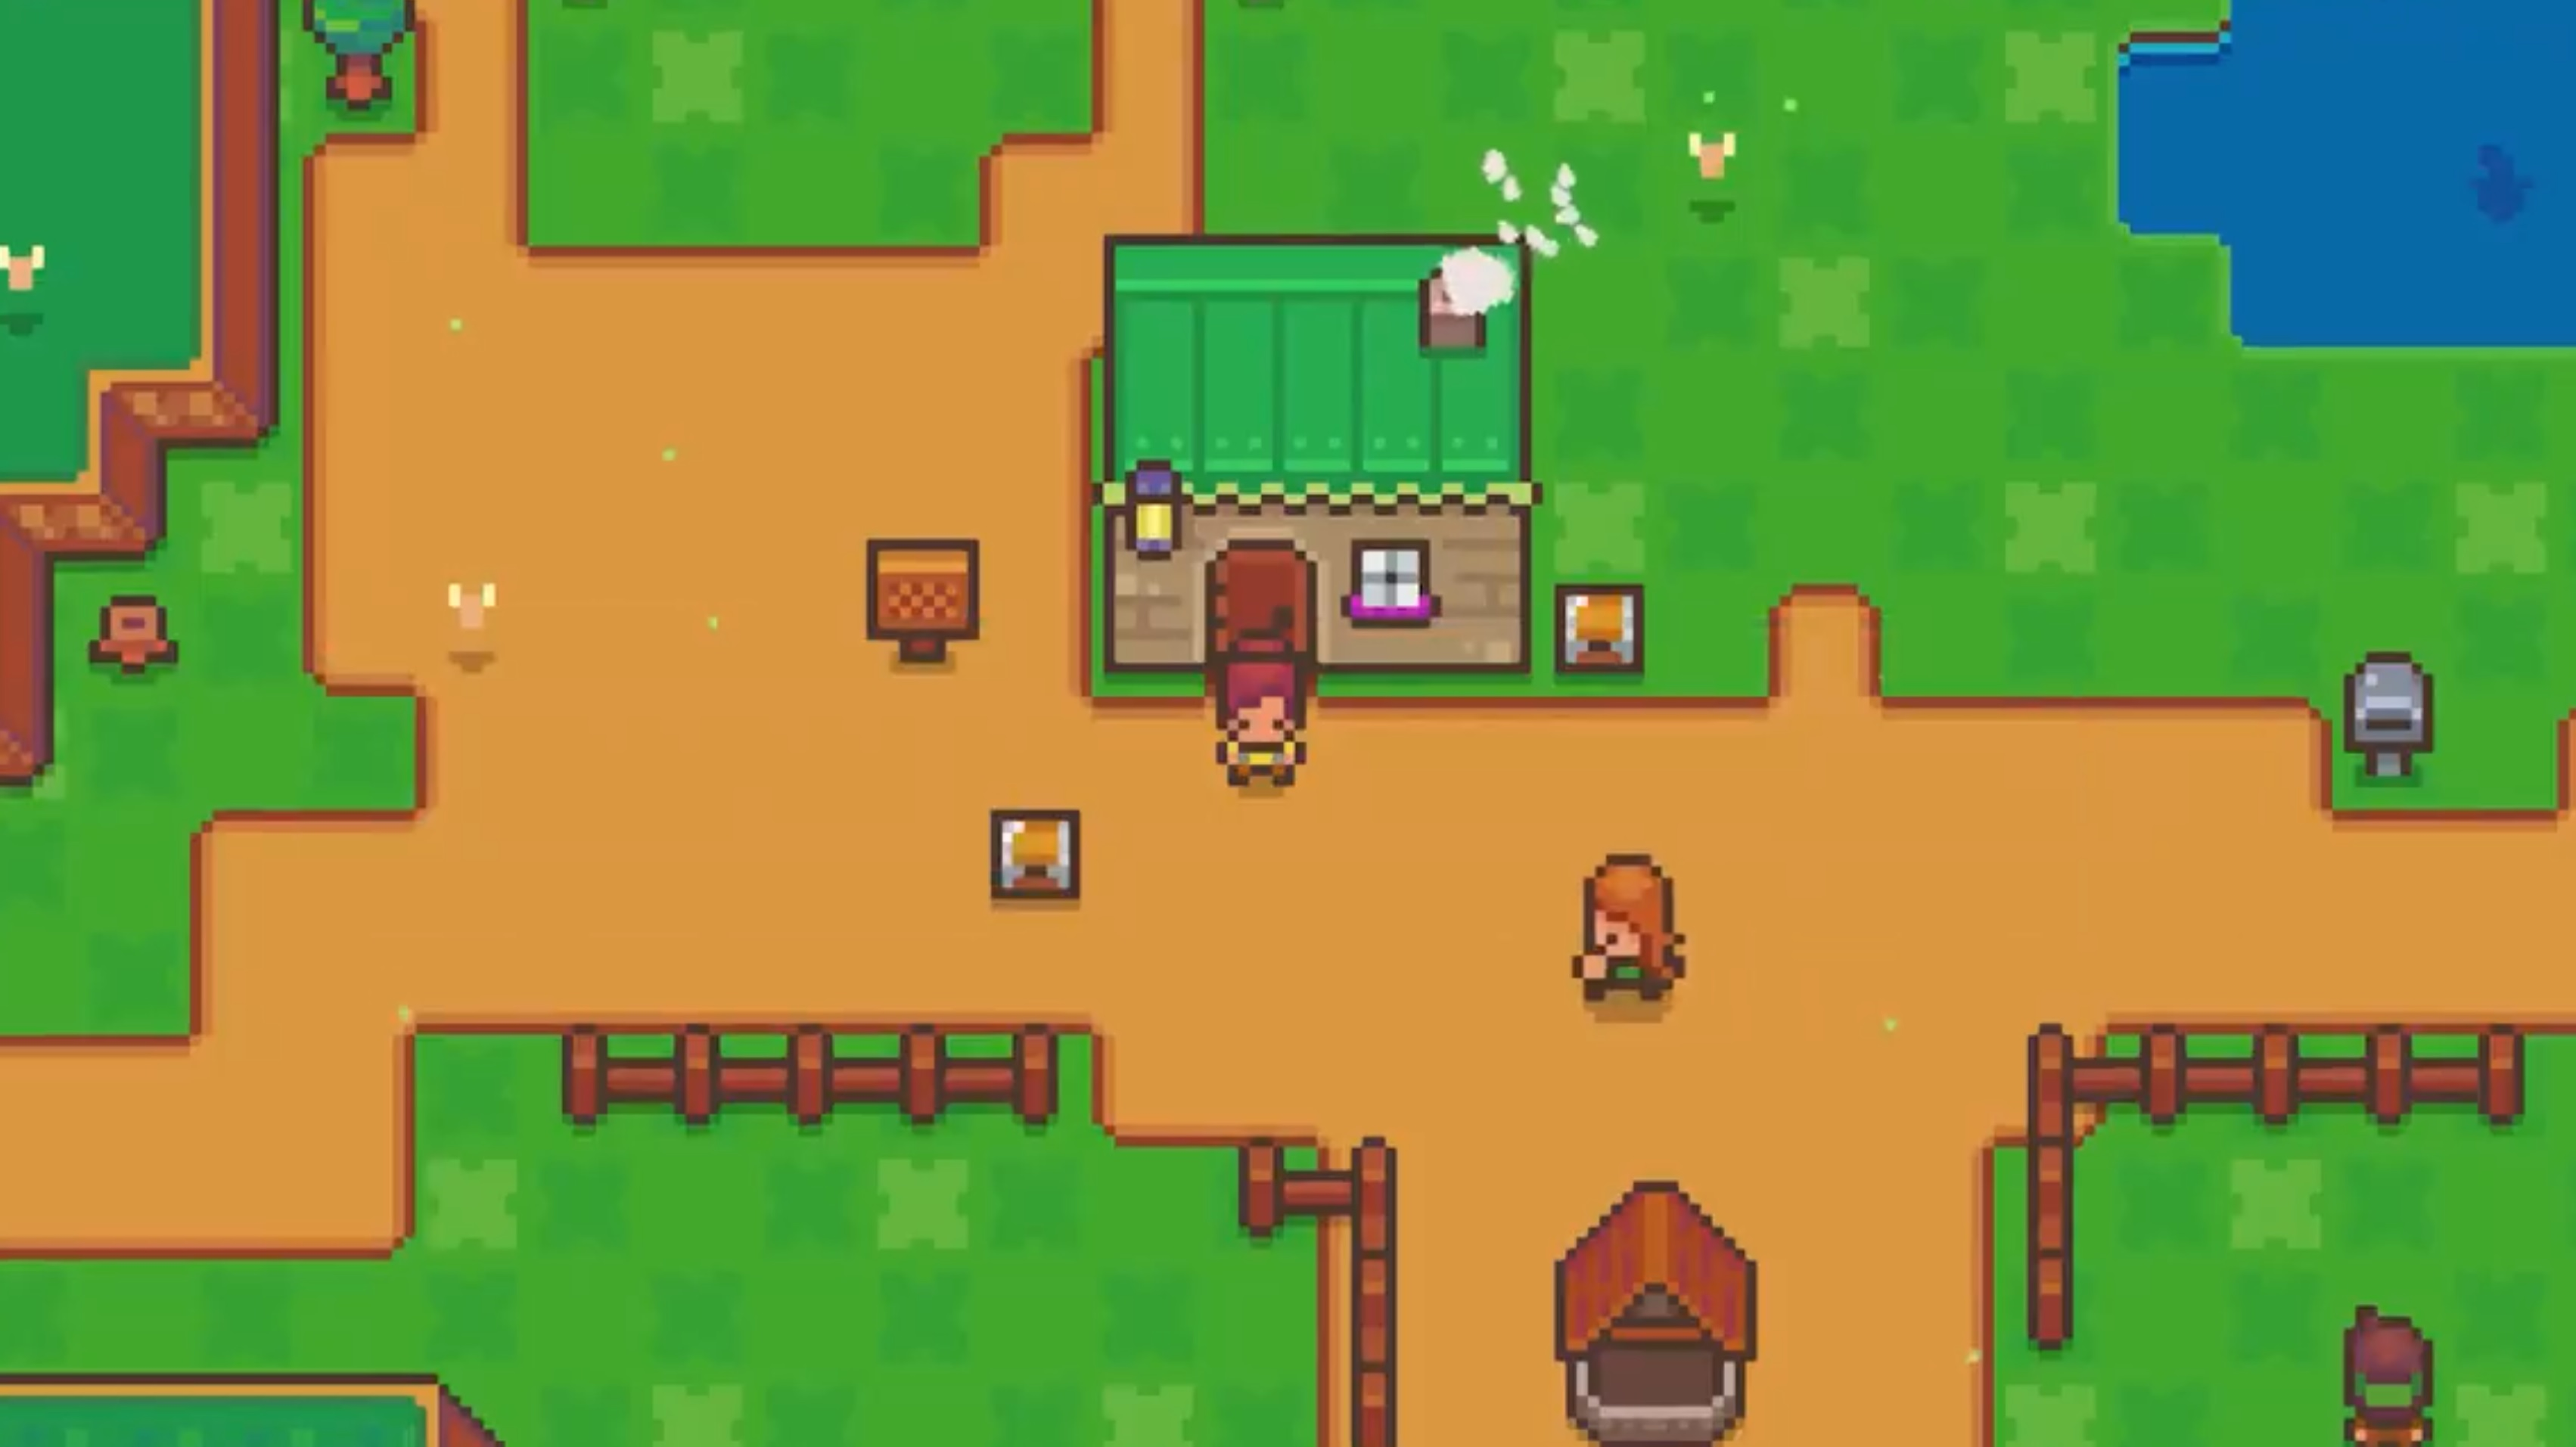 Littlewood for Switch, which looks a lot like Stardew Valley, takes place after you've already saved the world screenshot